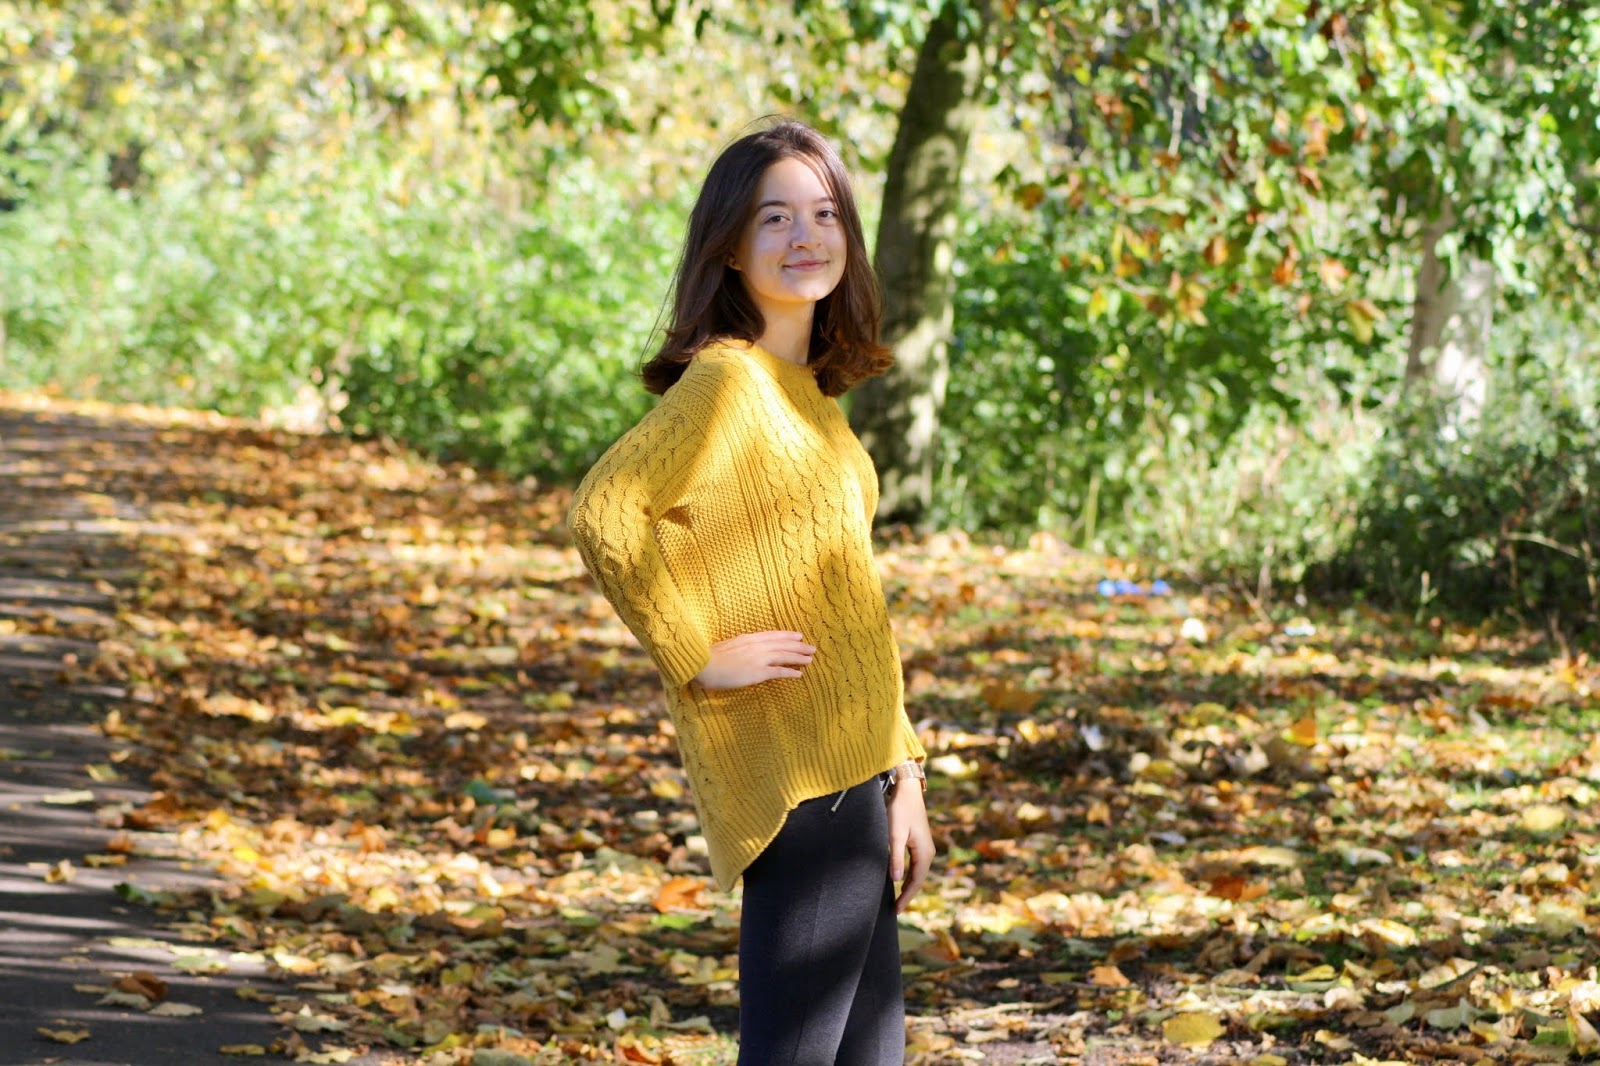 abbey stands turned towards the camera, hand on hip, she is smiling and wears a mustard knit jumper